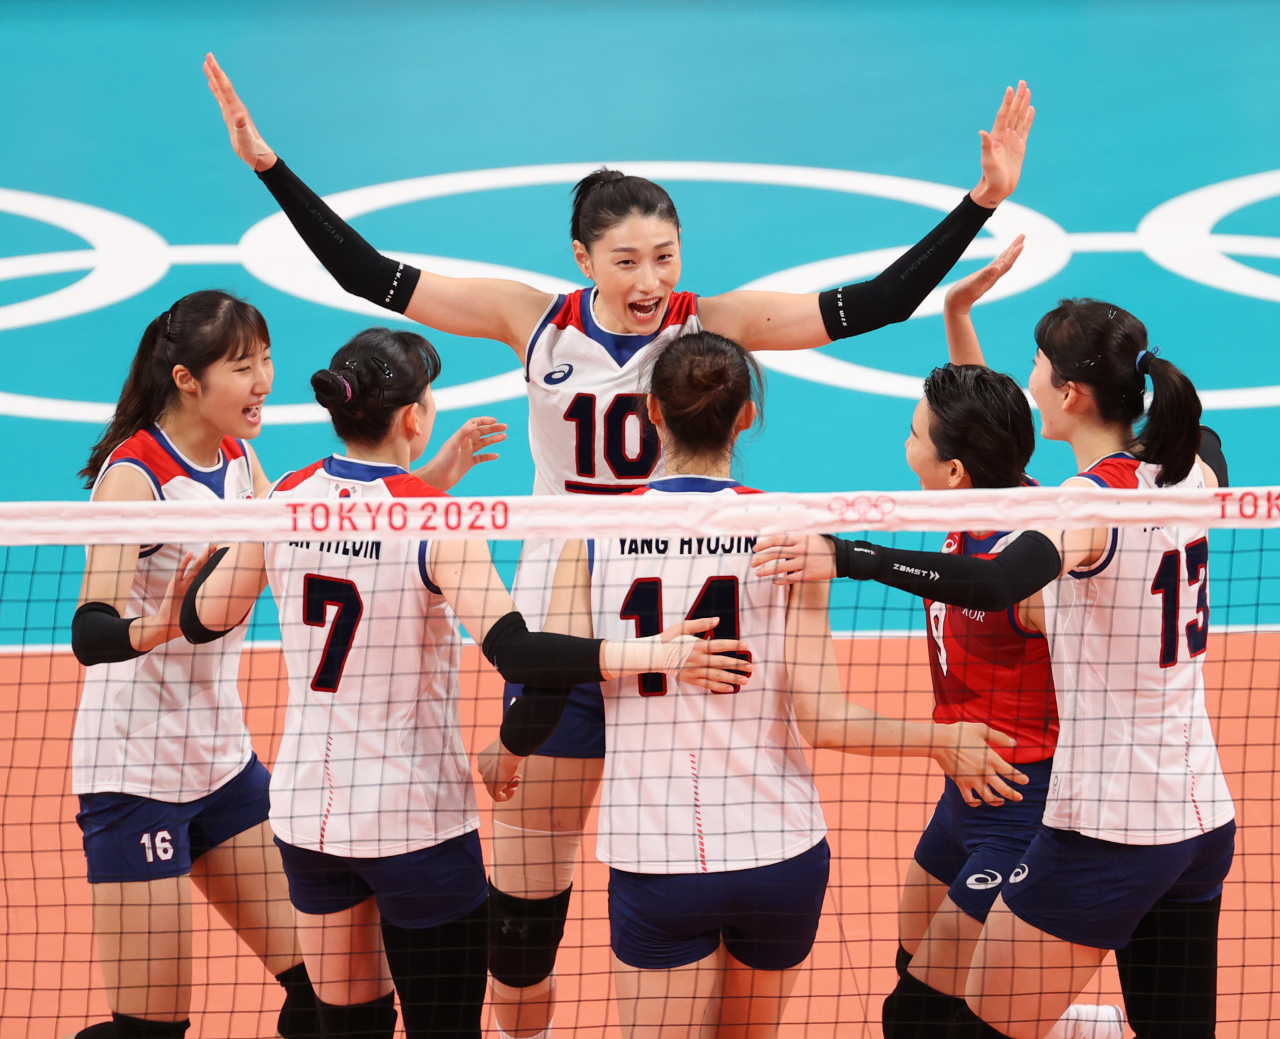 South Korean players celebrate a point against Serbia during the bronze medal match of the Tokyo Olympic women's volleyball tournament at Ariake Arena in Tokyo on Sunday. (Yonhap)